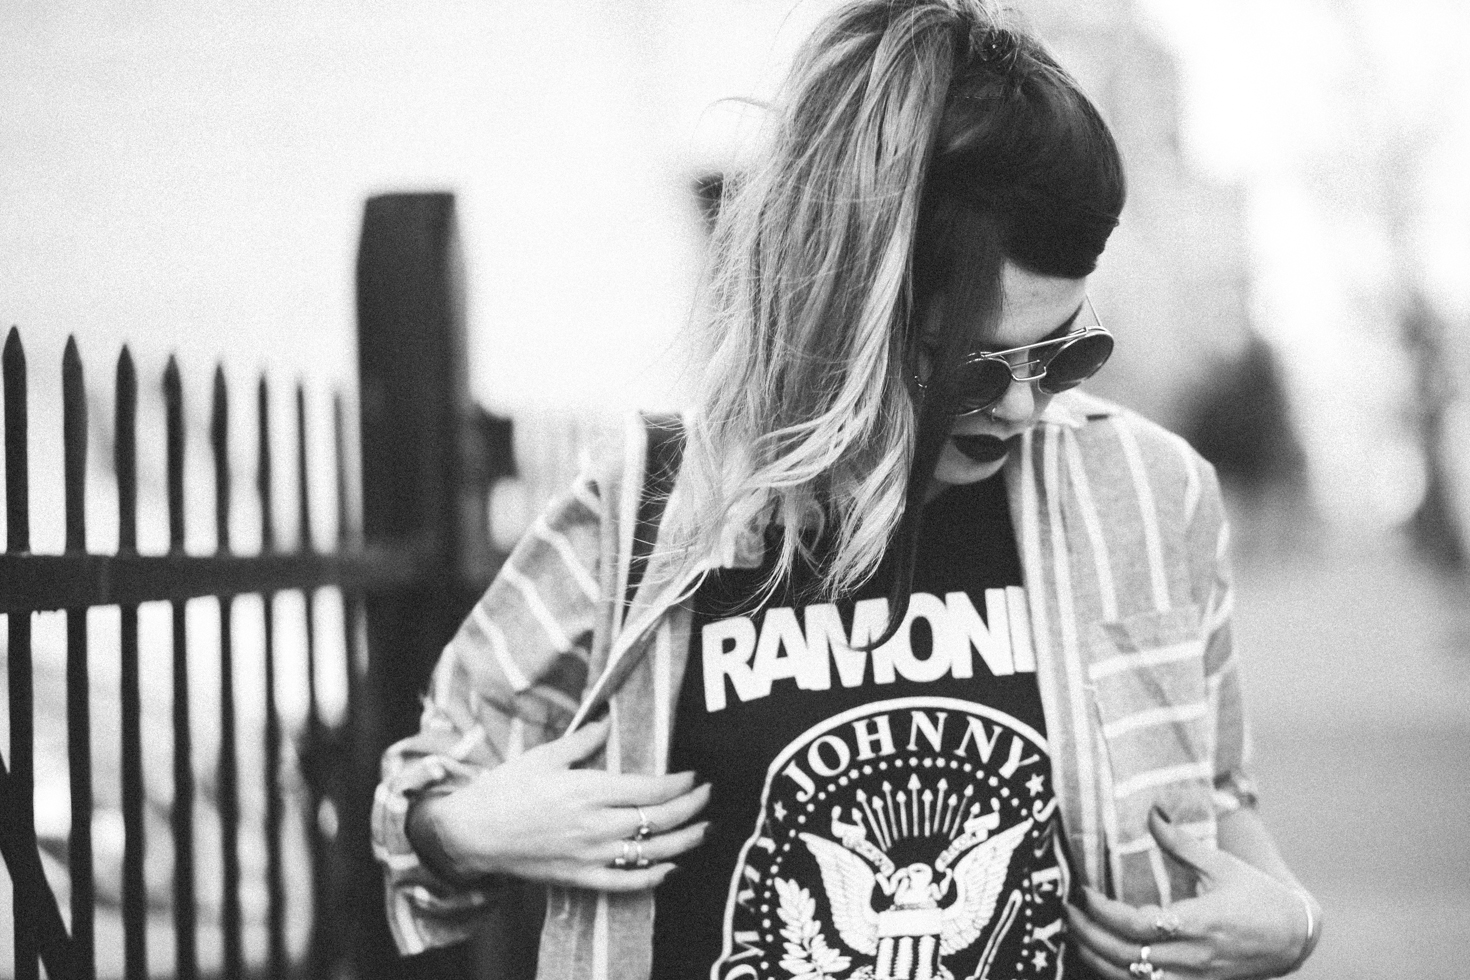 Le Happy wearing Ramones t-shirt and round sunglasses